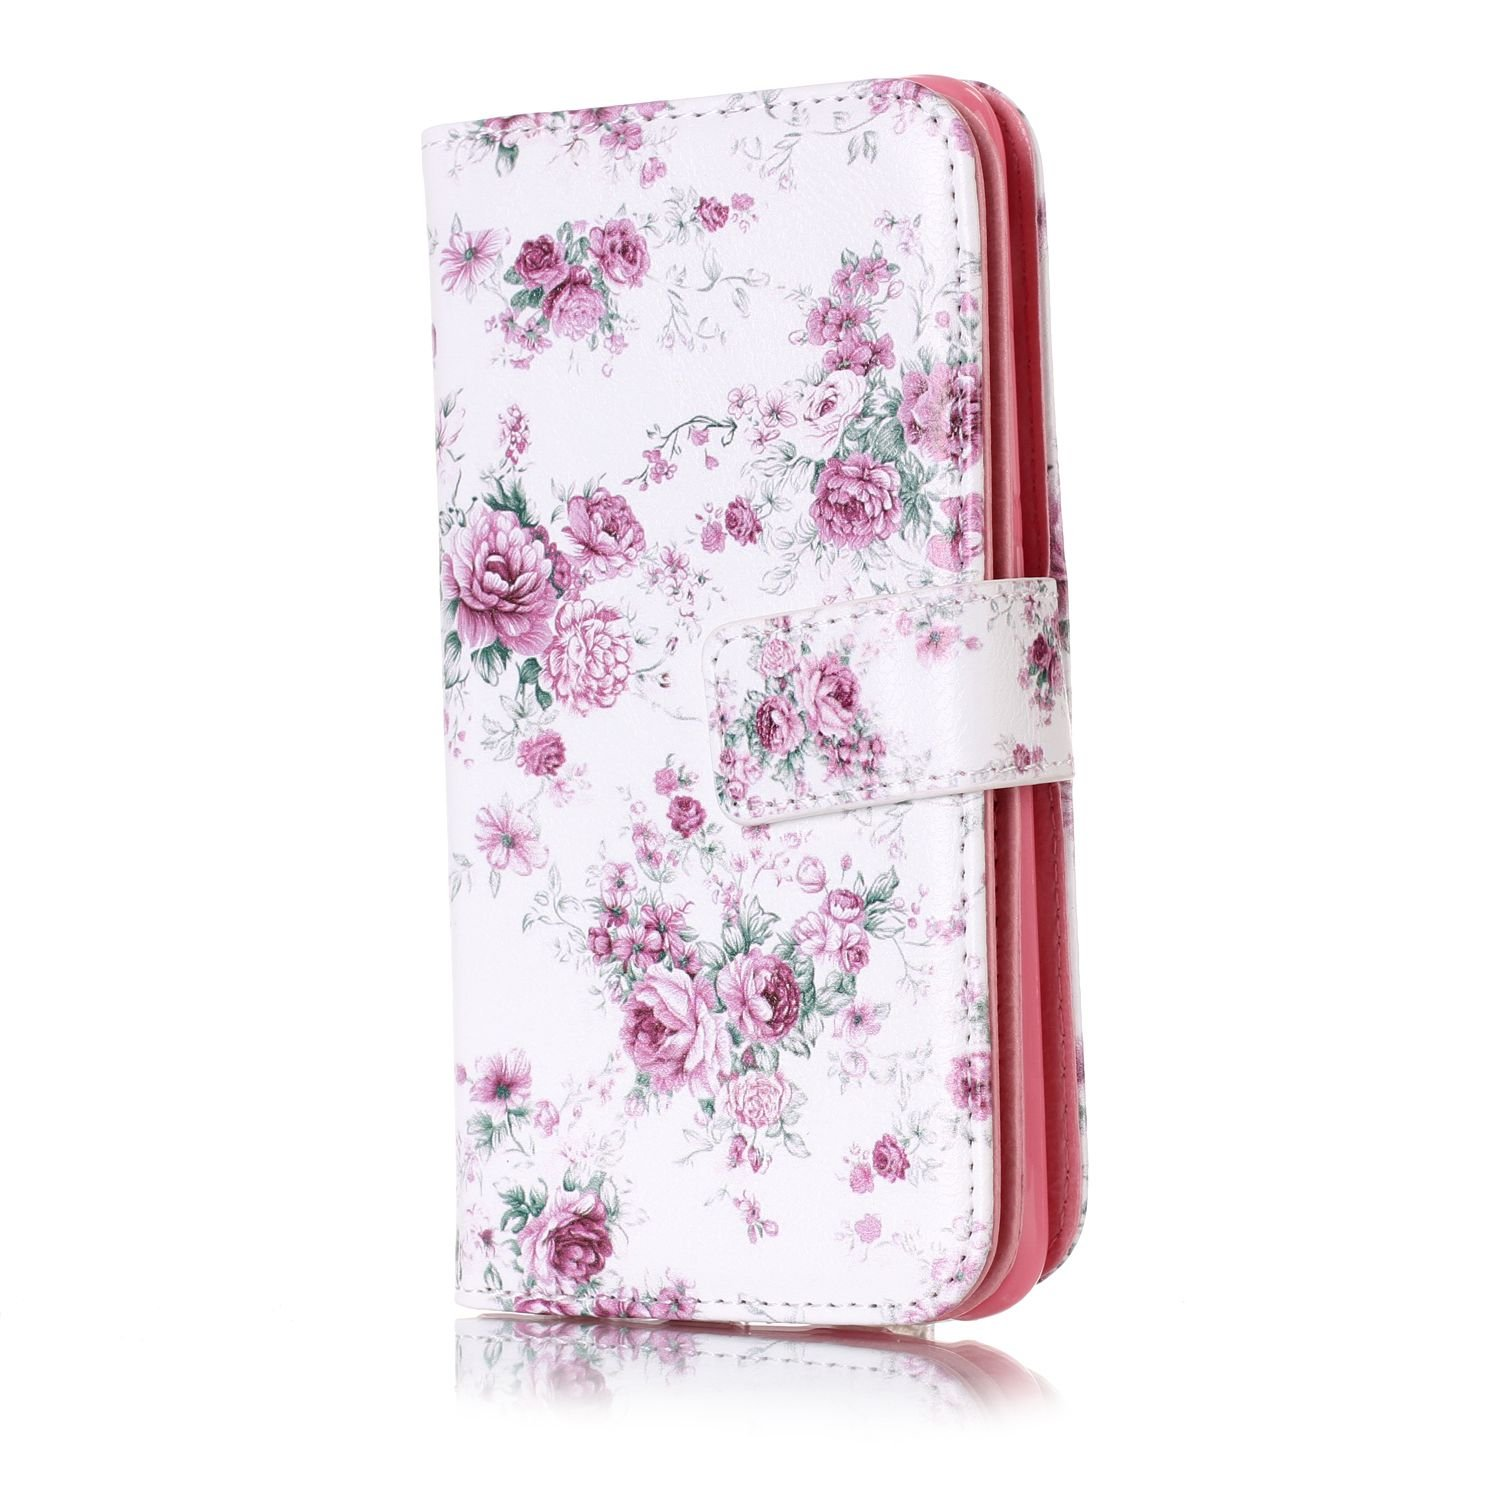 JuSha for Apply to Huawei 5C Edge Case PU Leather Wallet Magnetic Cover Skin(Dandelion mobile phone case)